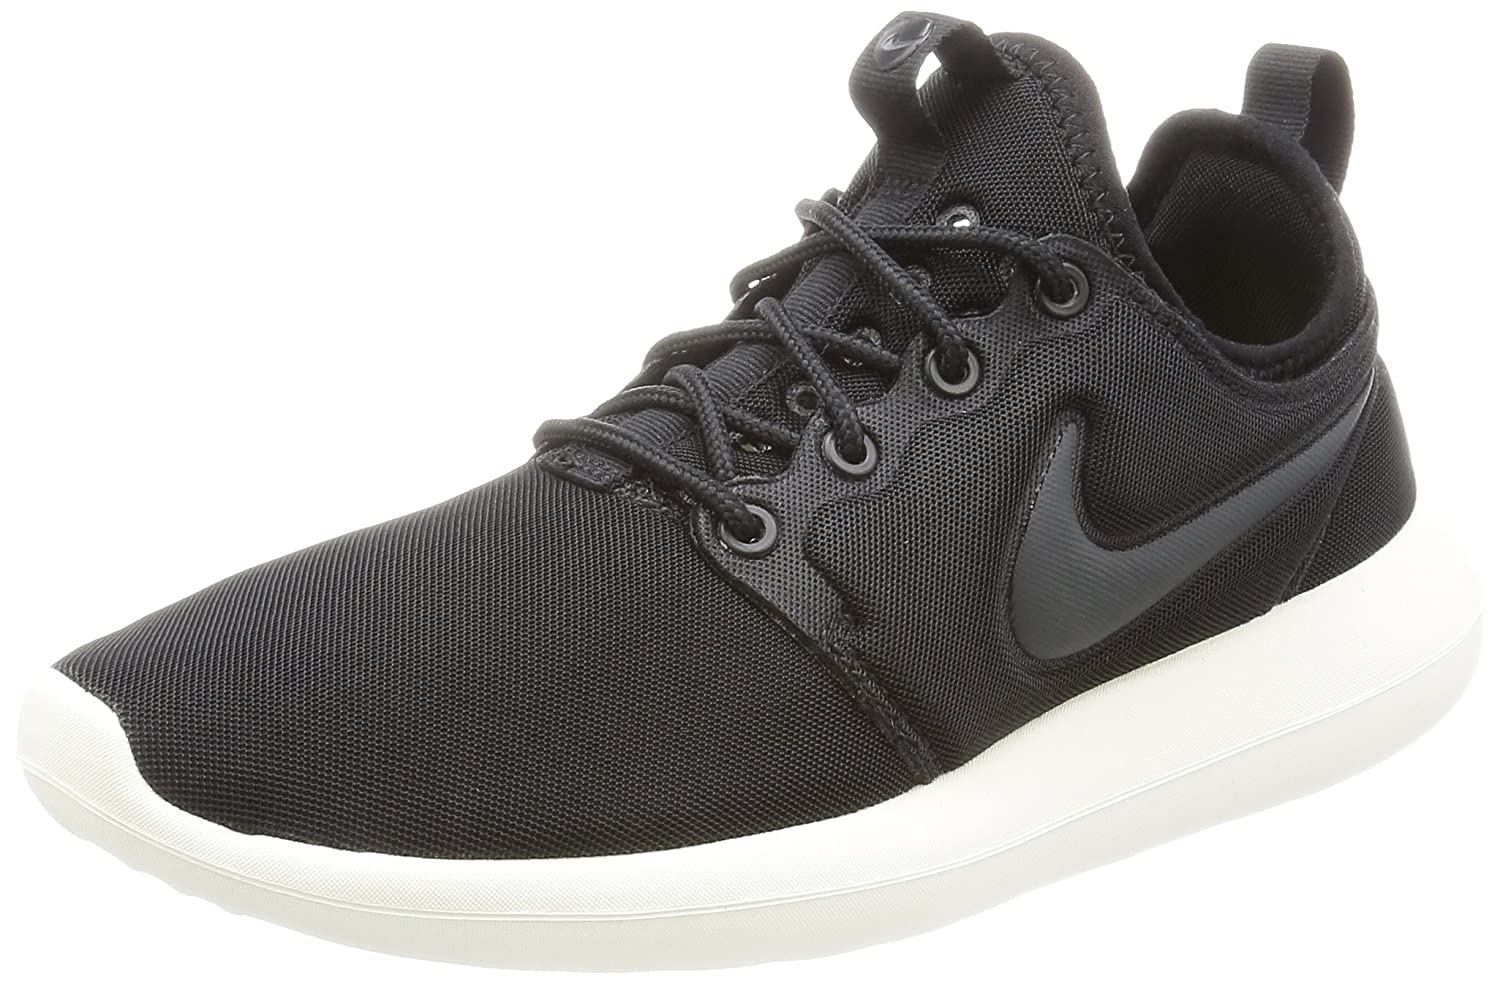 new product 55b17 7e605 Nike Women s W Roshe Two Running Shoes  Amazon.co.uk  Shoes   Bags